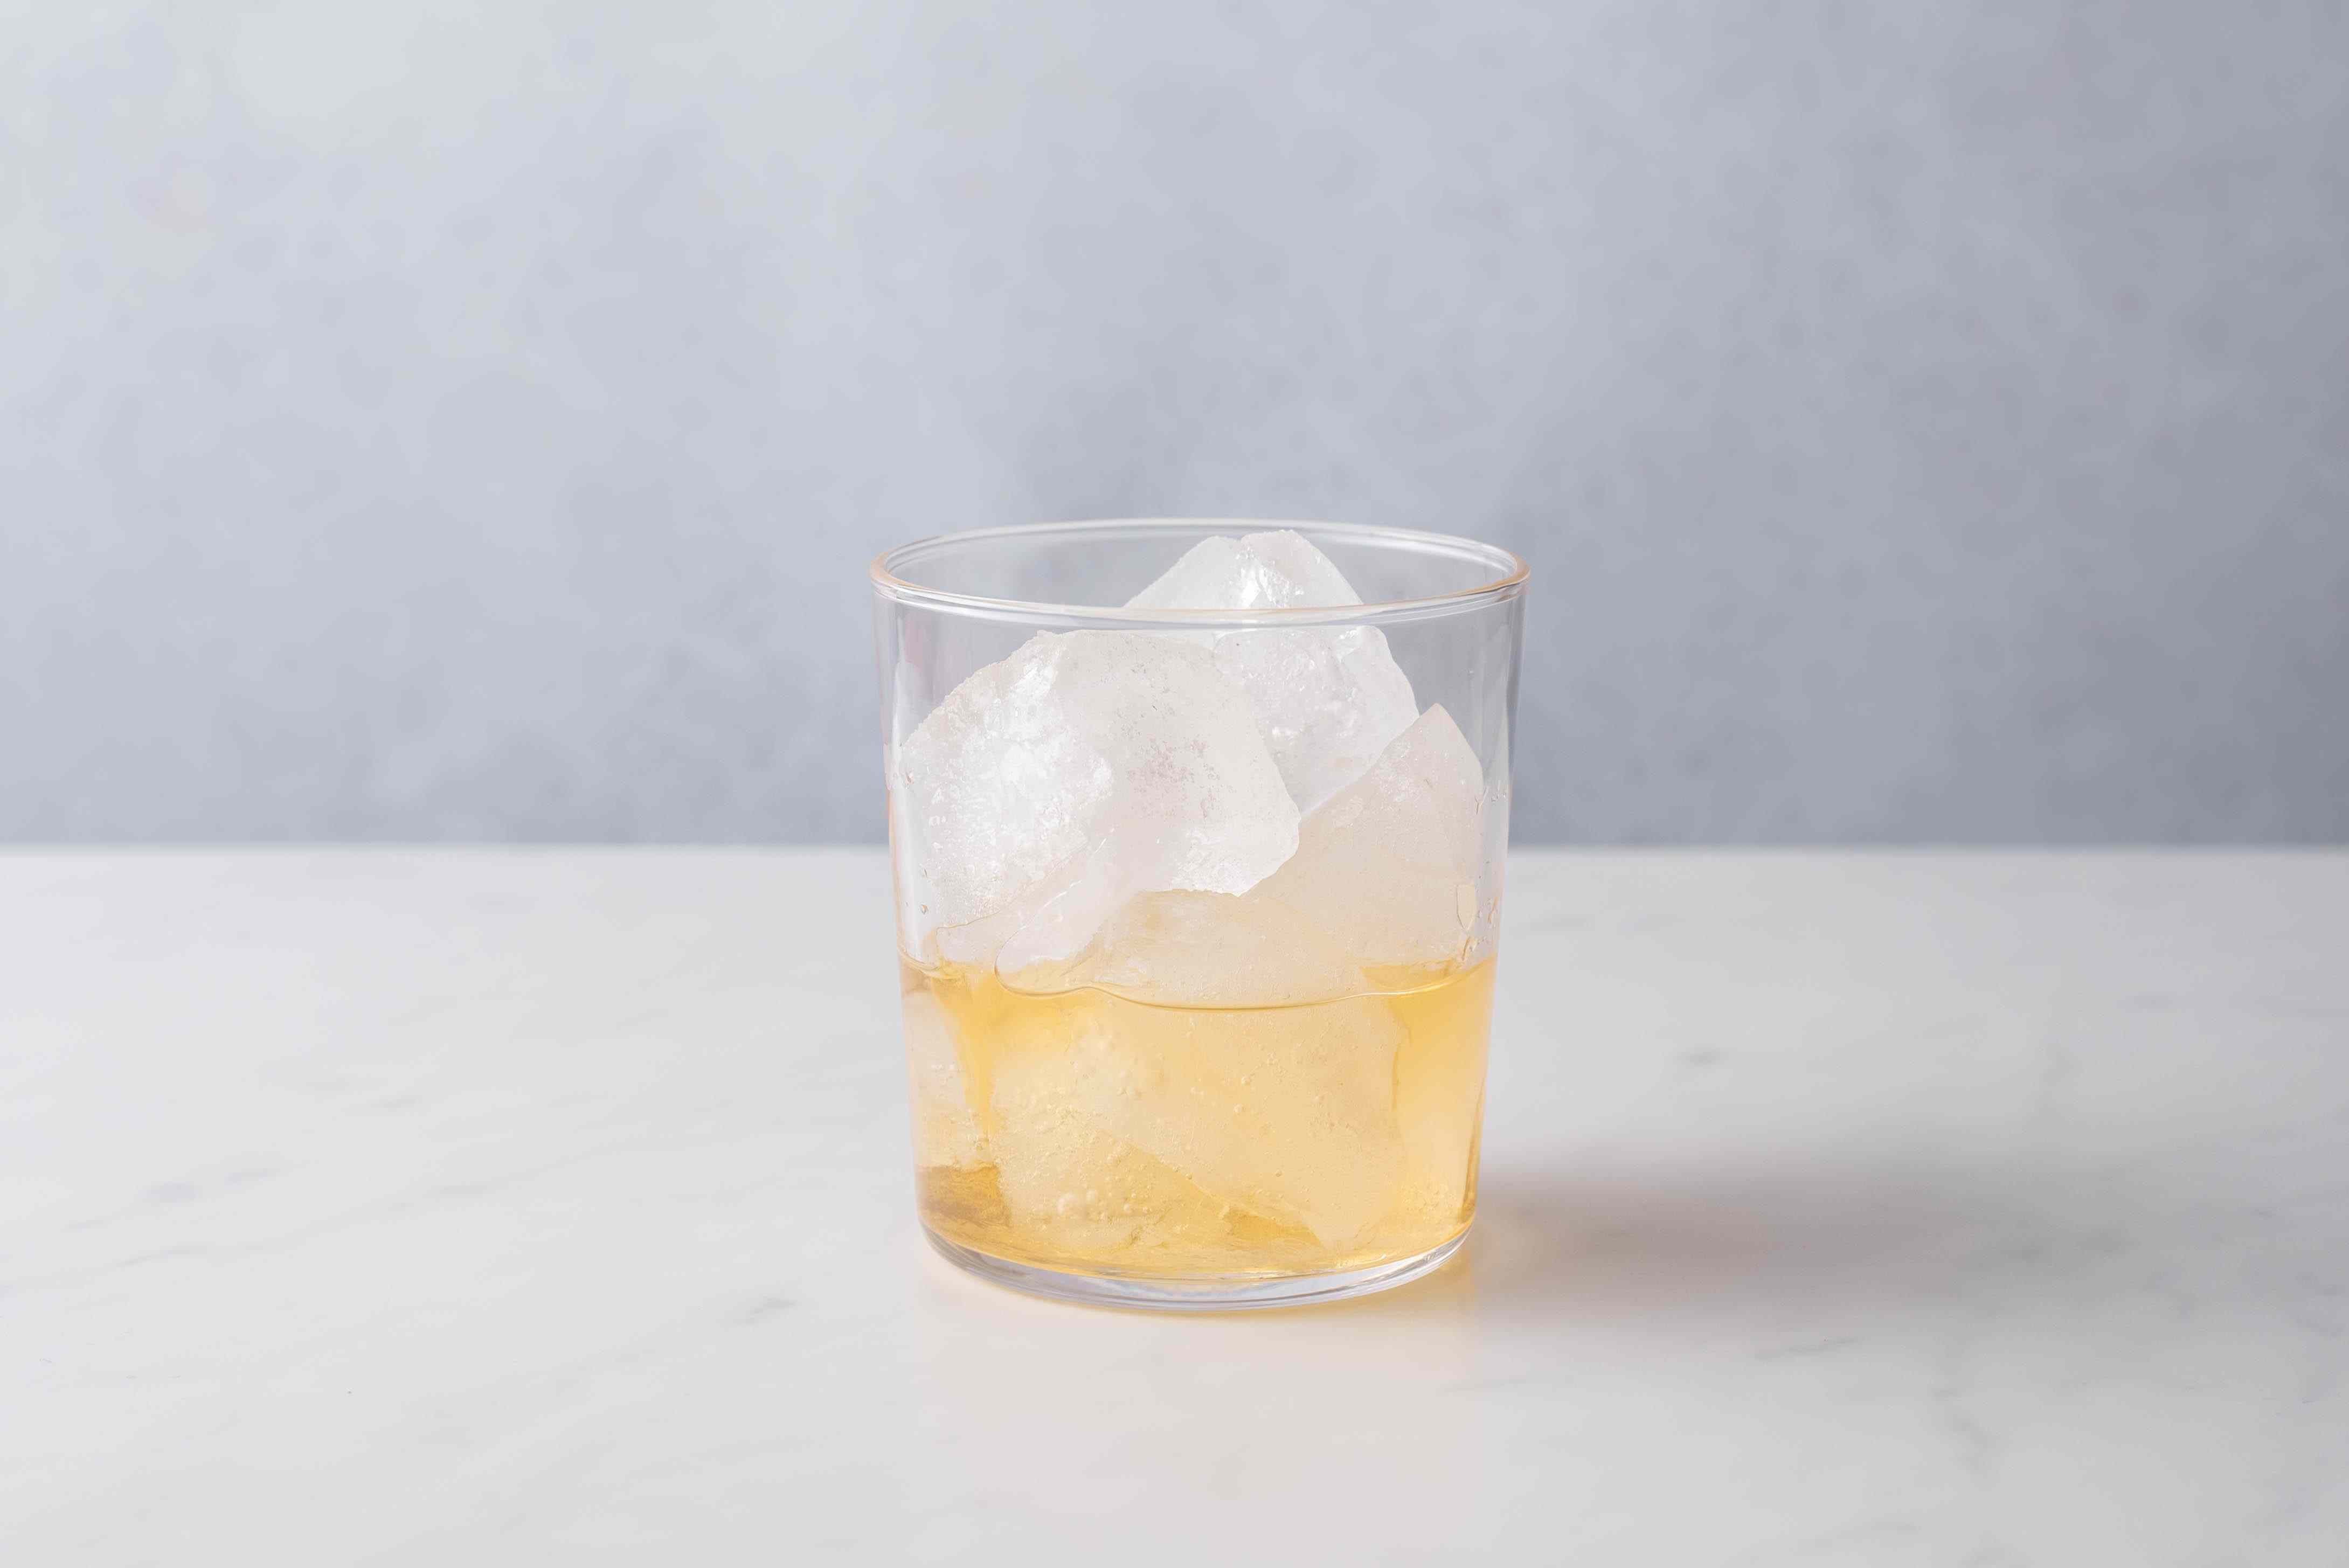 pour the tequila and orange liqueur into a with ice